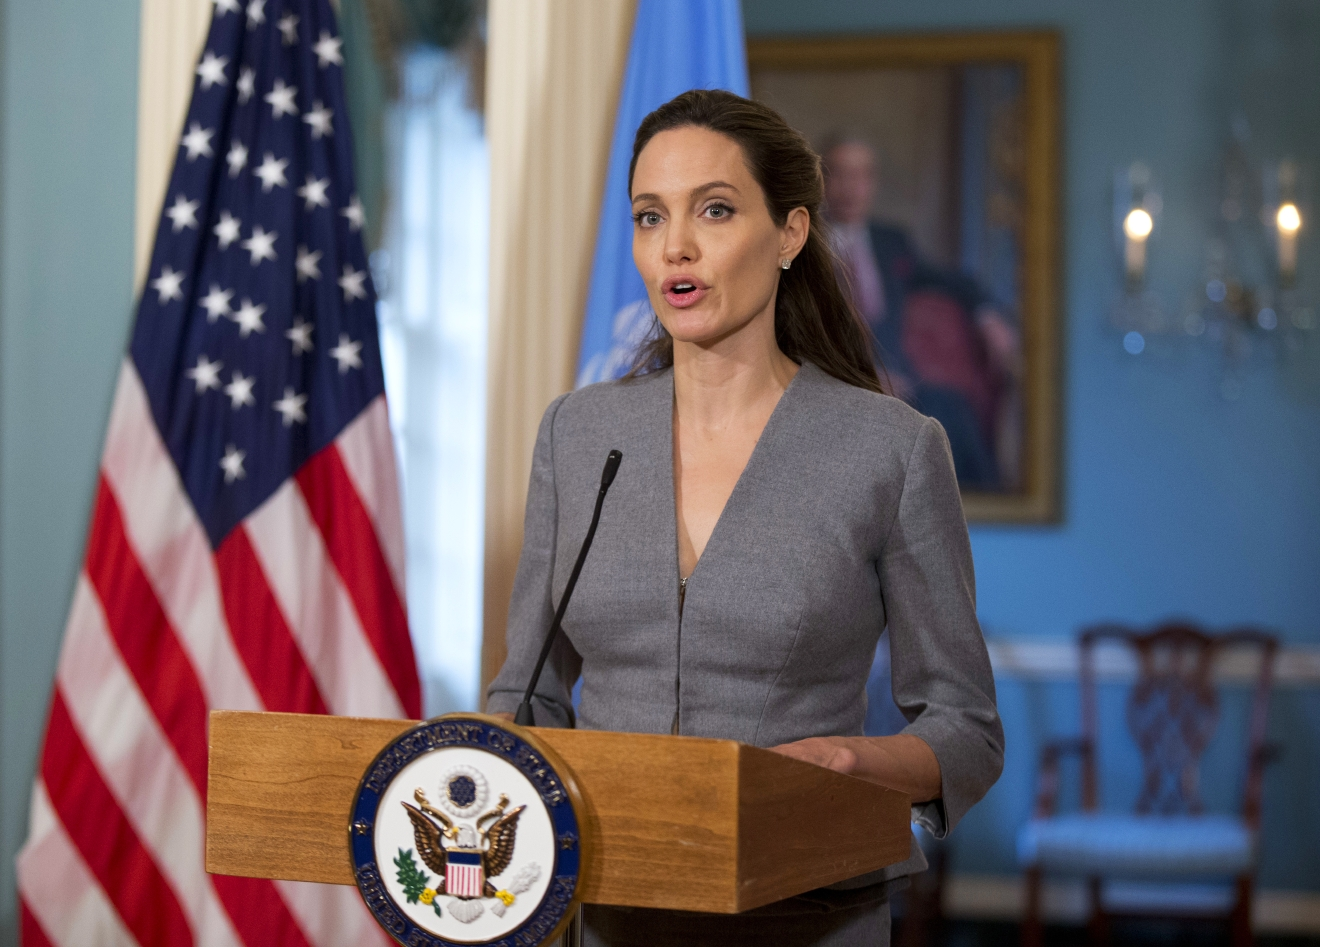 FILE- In this June 20, 2016, file photo, United Nations High Commissioner for Refugees Special Envoy Angelina Jolie speaks to reporters during a meeting with Secretary of State John Kerry at the Department of State in Washington. (AP Photo/Manuel Balce Ceneta)